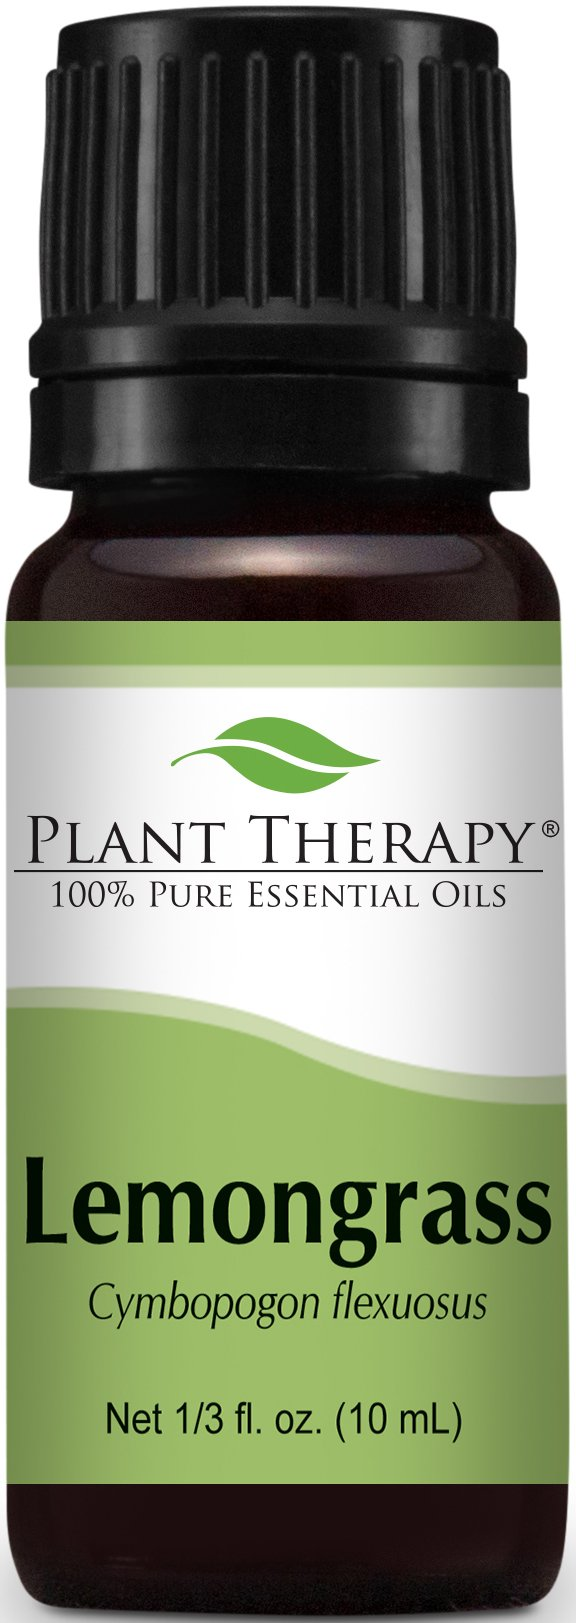 Plant Therapy USDA Certified Organic Lemongrass Essential Oil. 100% Pure, Undiluted, Therapeutic Grade. 10 ml (1/3 oz).